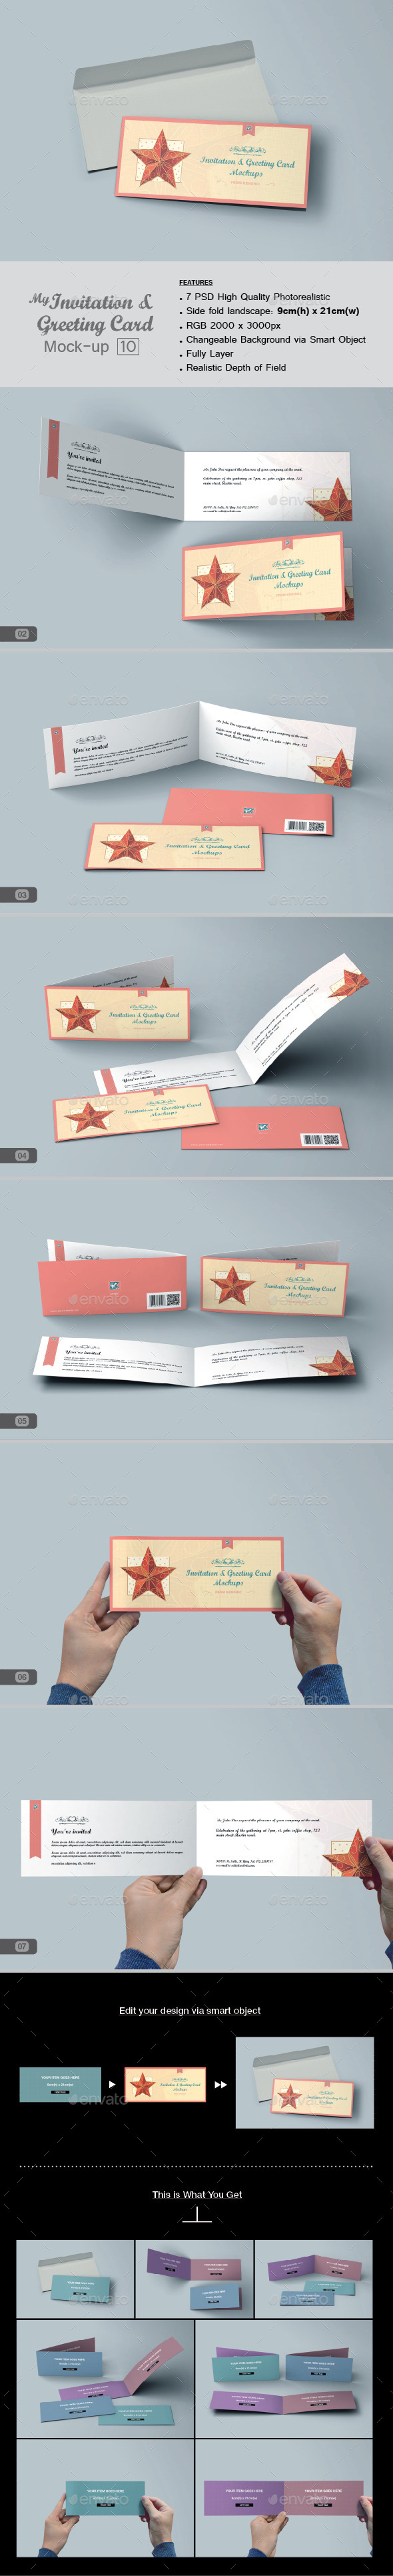 GraphicRiver myGreeting Card Mock-up v10 11648833